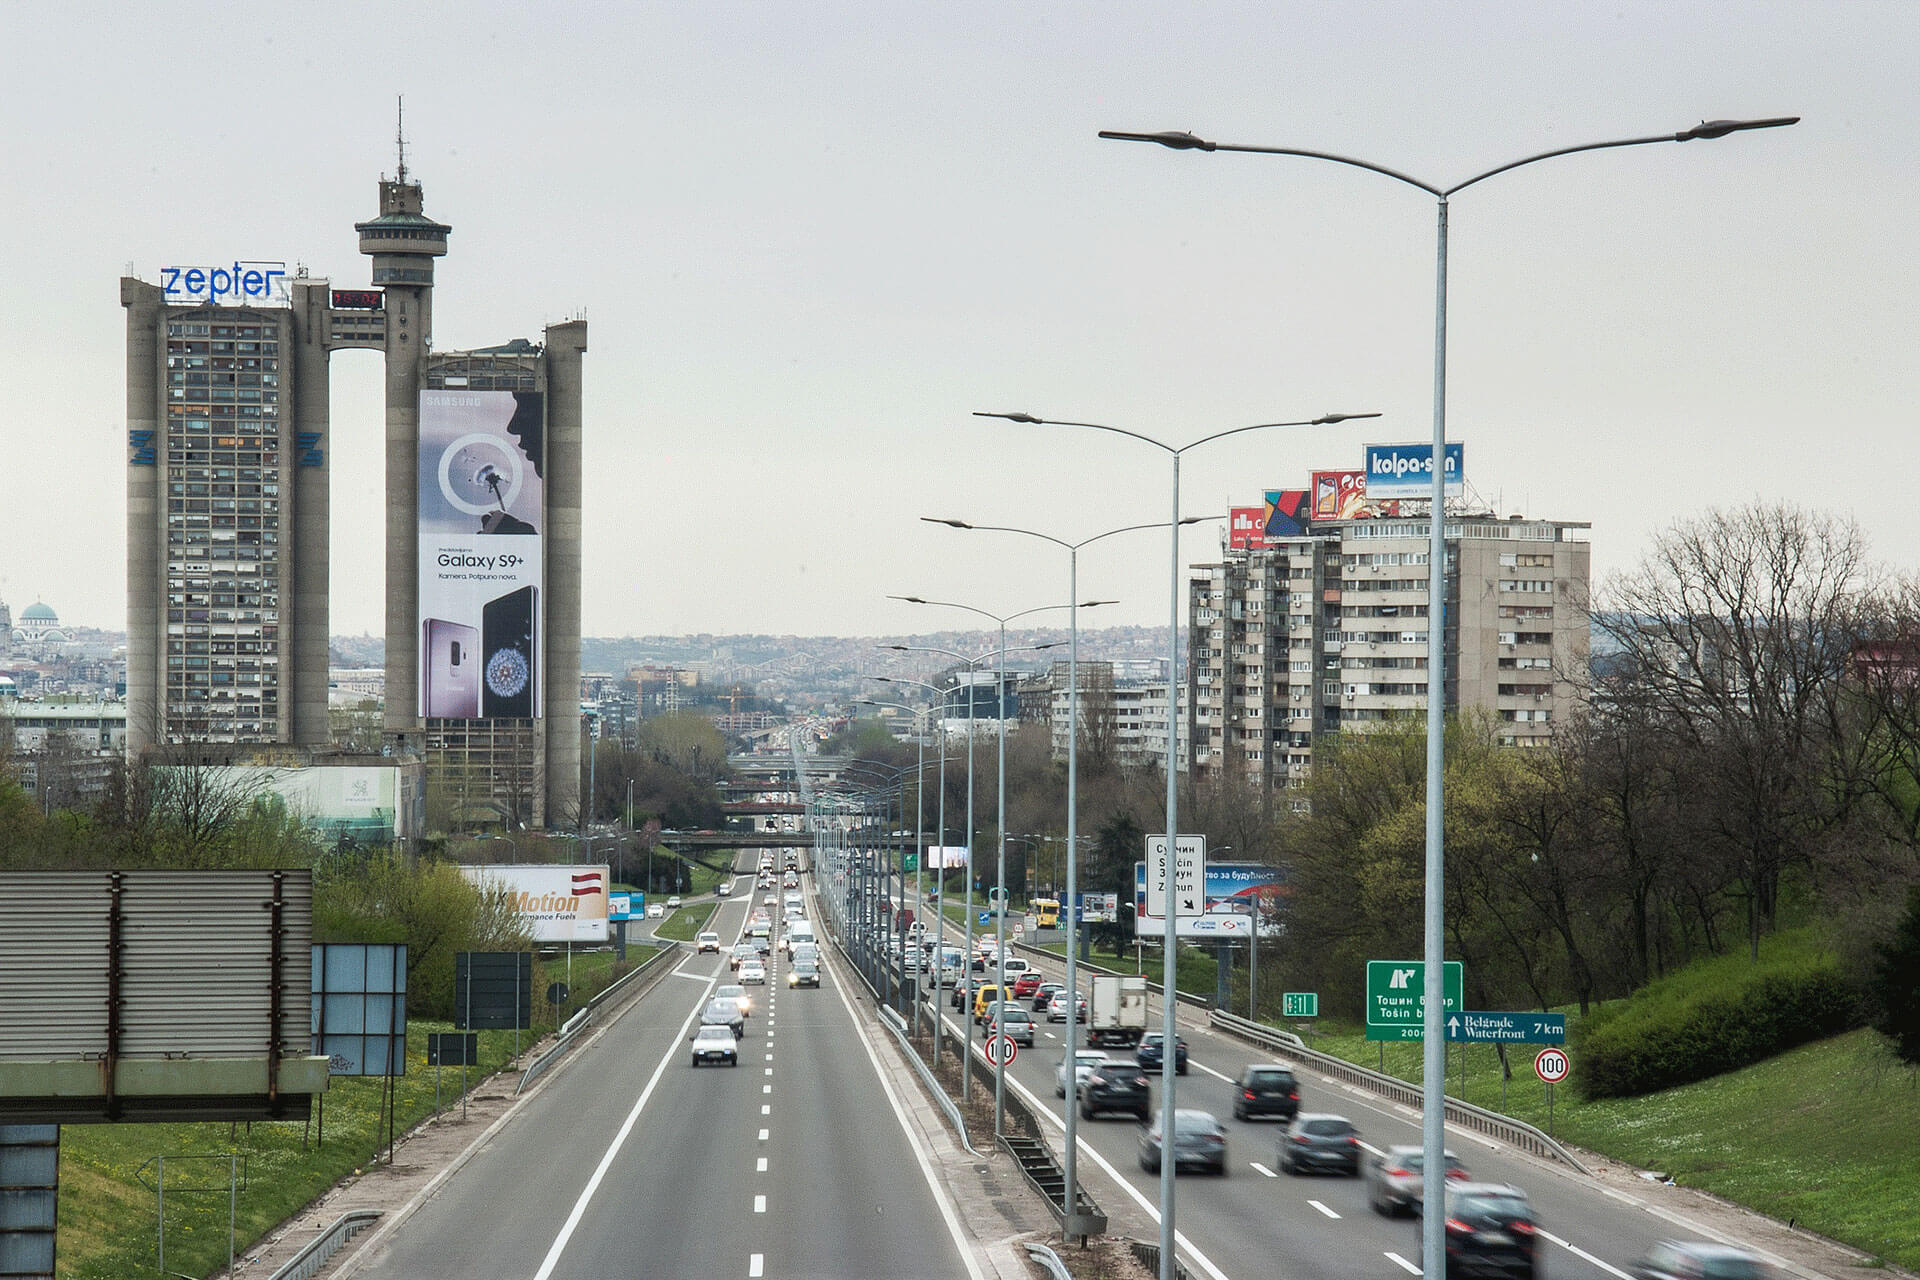 Over 1,300 energy efficient luminaires were installed to light the E75 in Belgrade